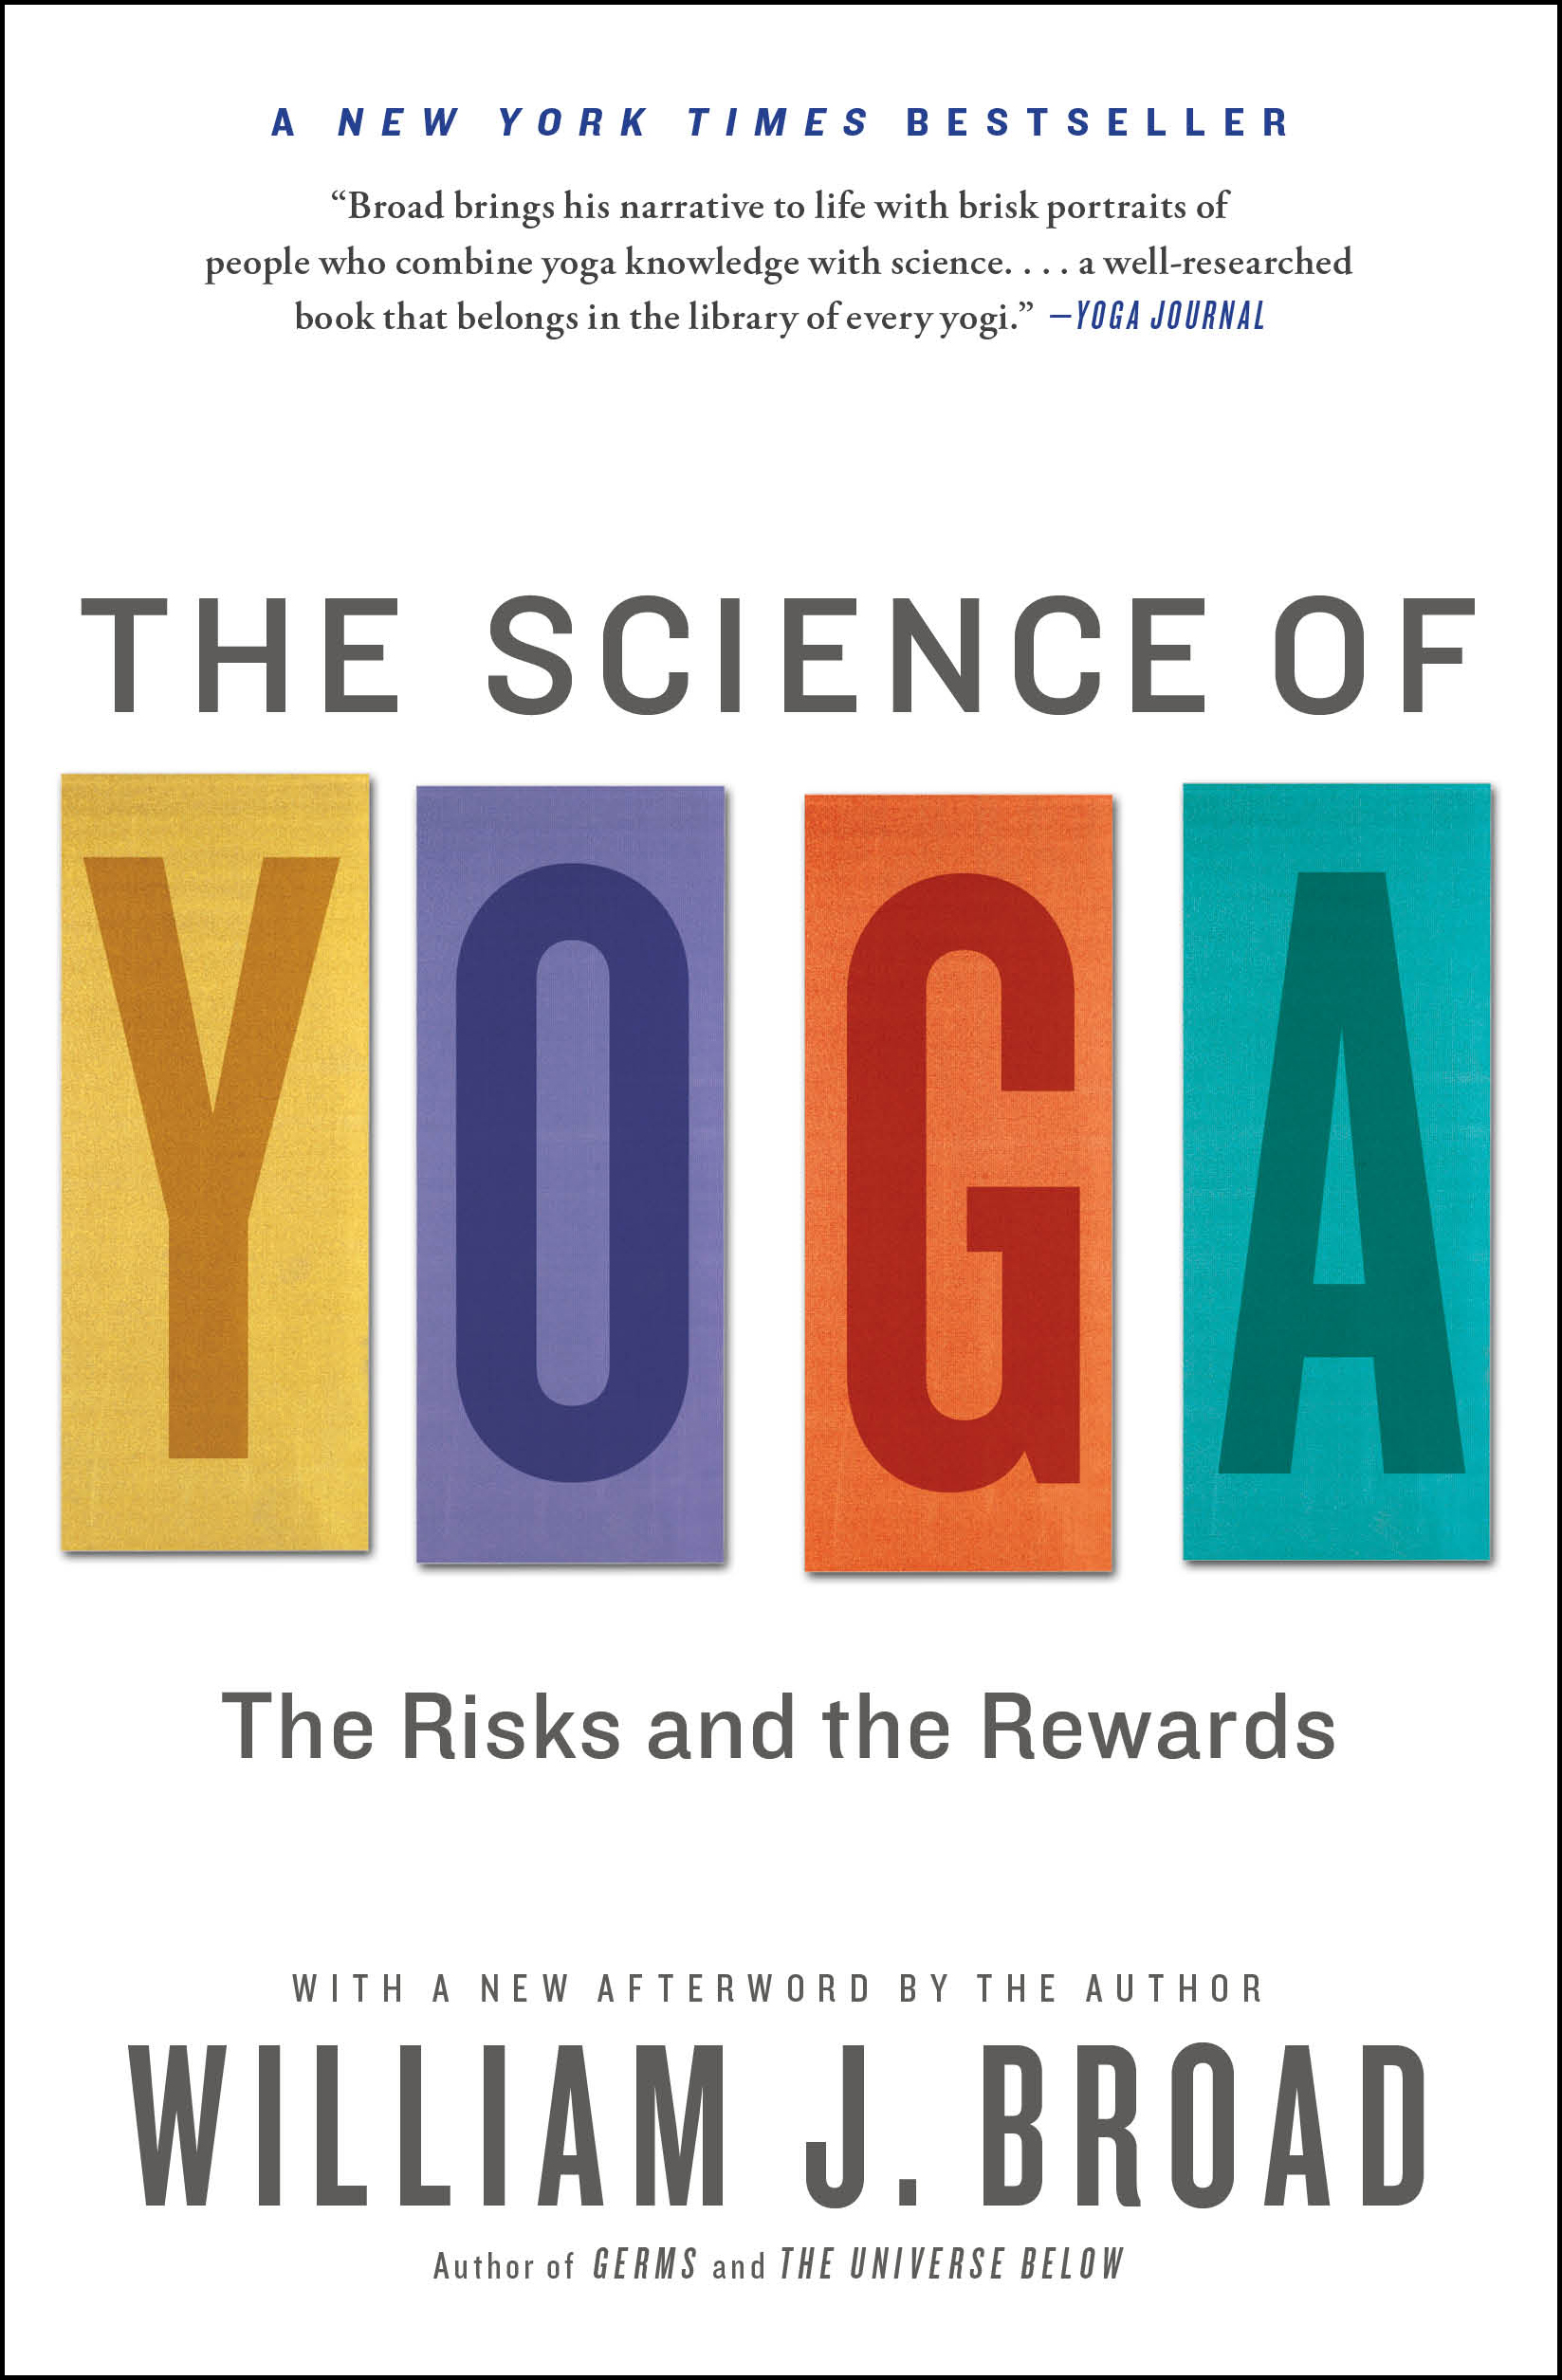 Book Cover Image (jpg): The Science of Yoga